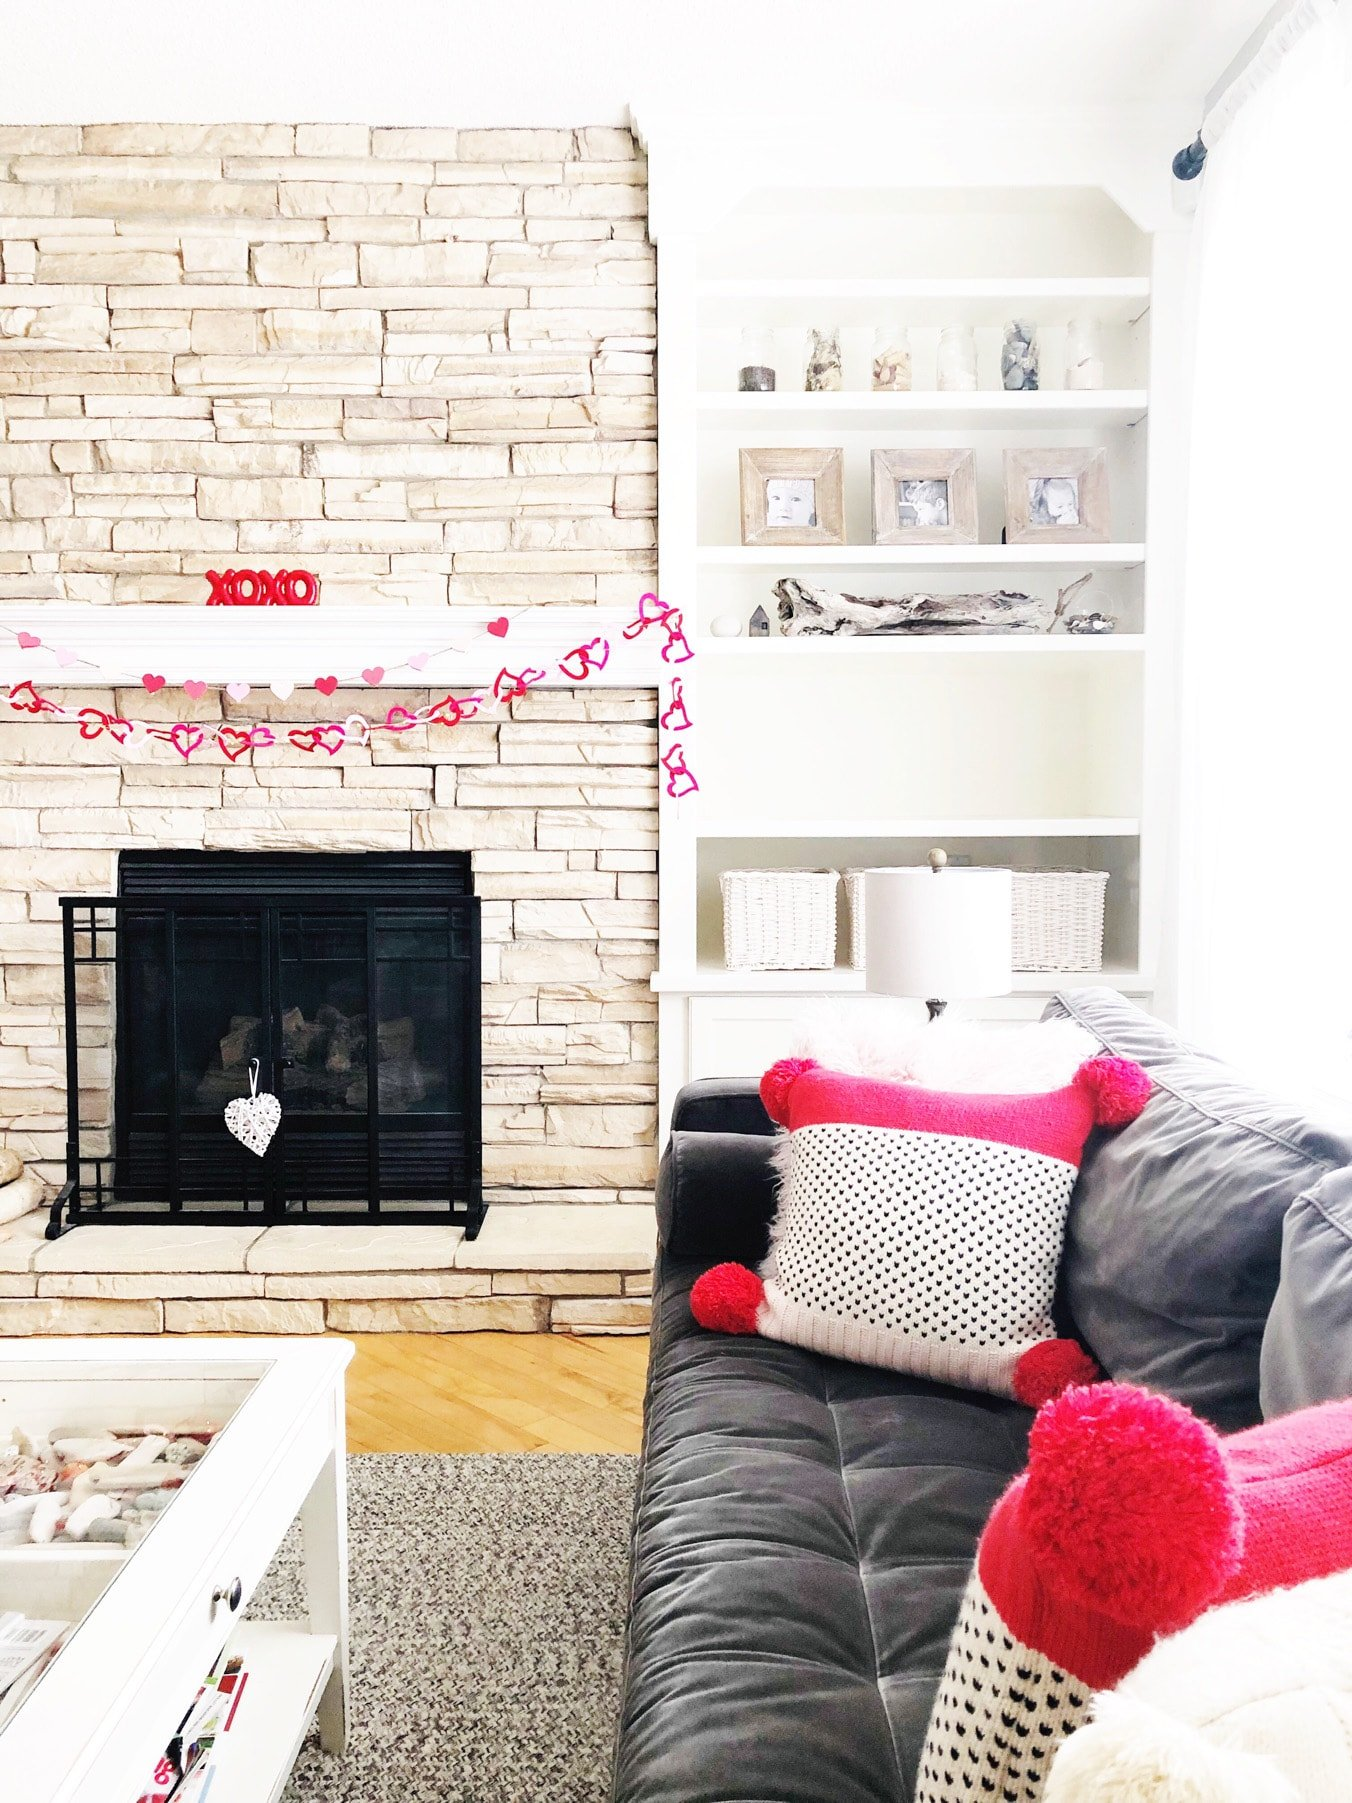 Decorating for Valentine's Day on a Budget